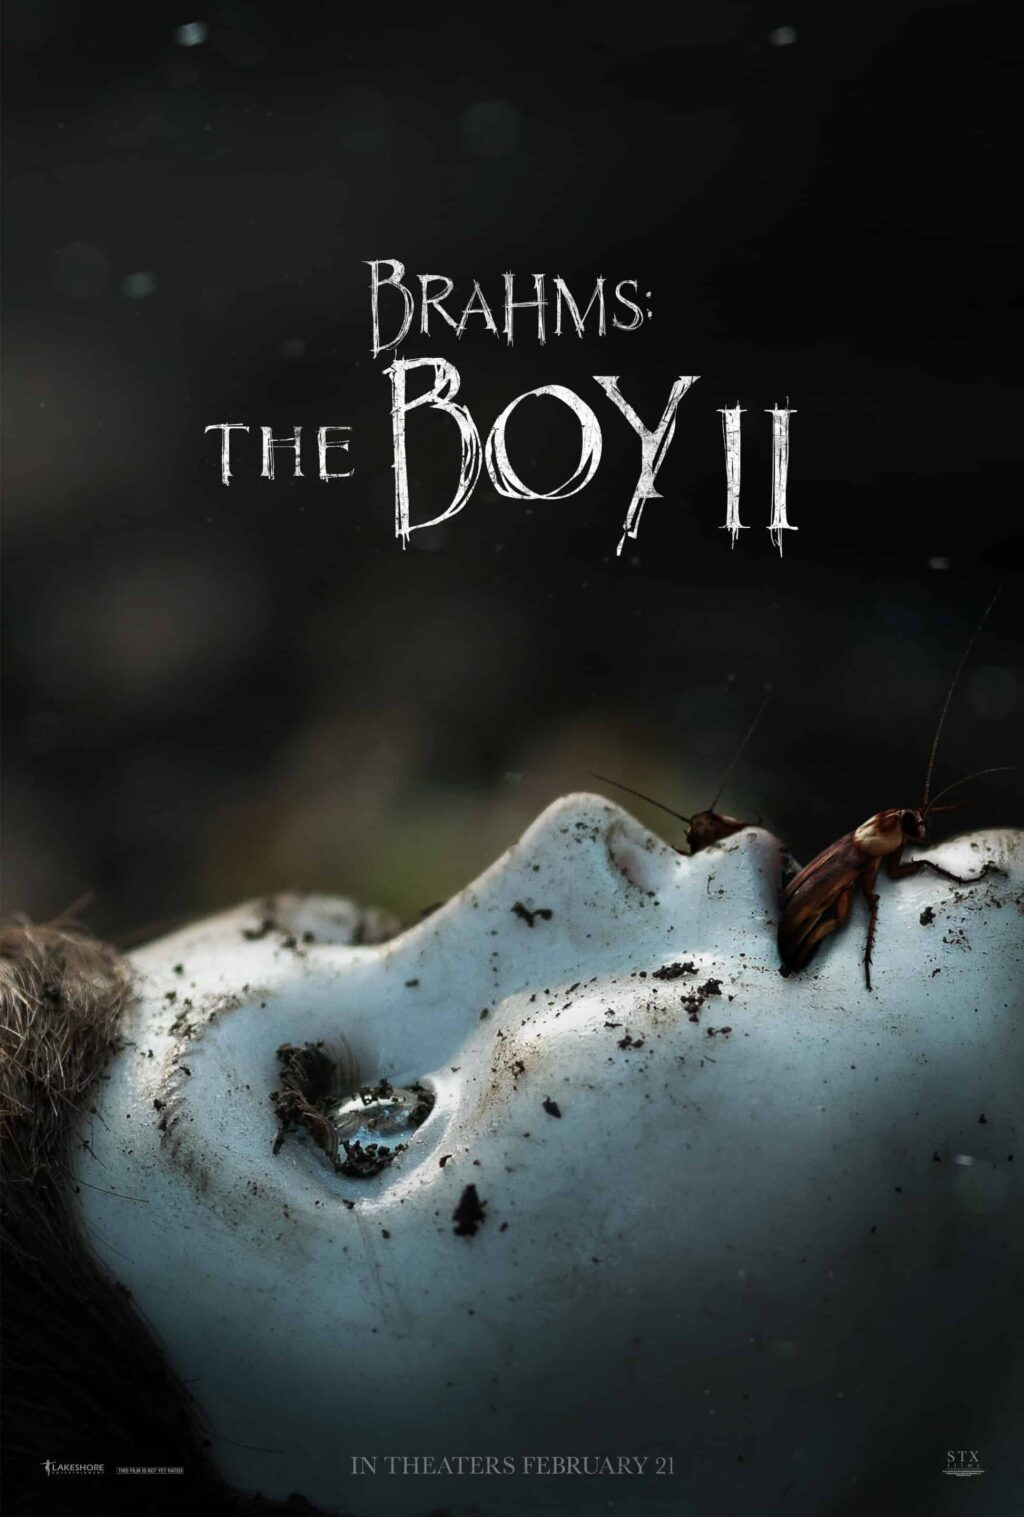 365913id1c STX The Boy2 Dom FNL 1sht 27x40 Digital sRGB2211 1024x1517 - BRAHMS: THE BOY II Scores 11% On Rotten Tomatoes